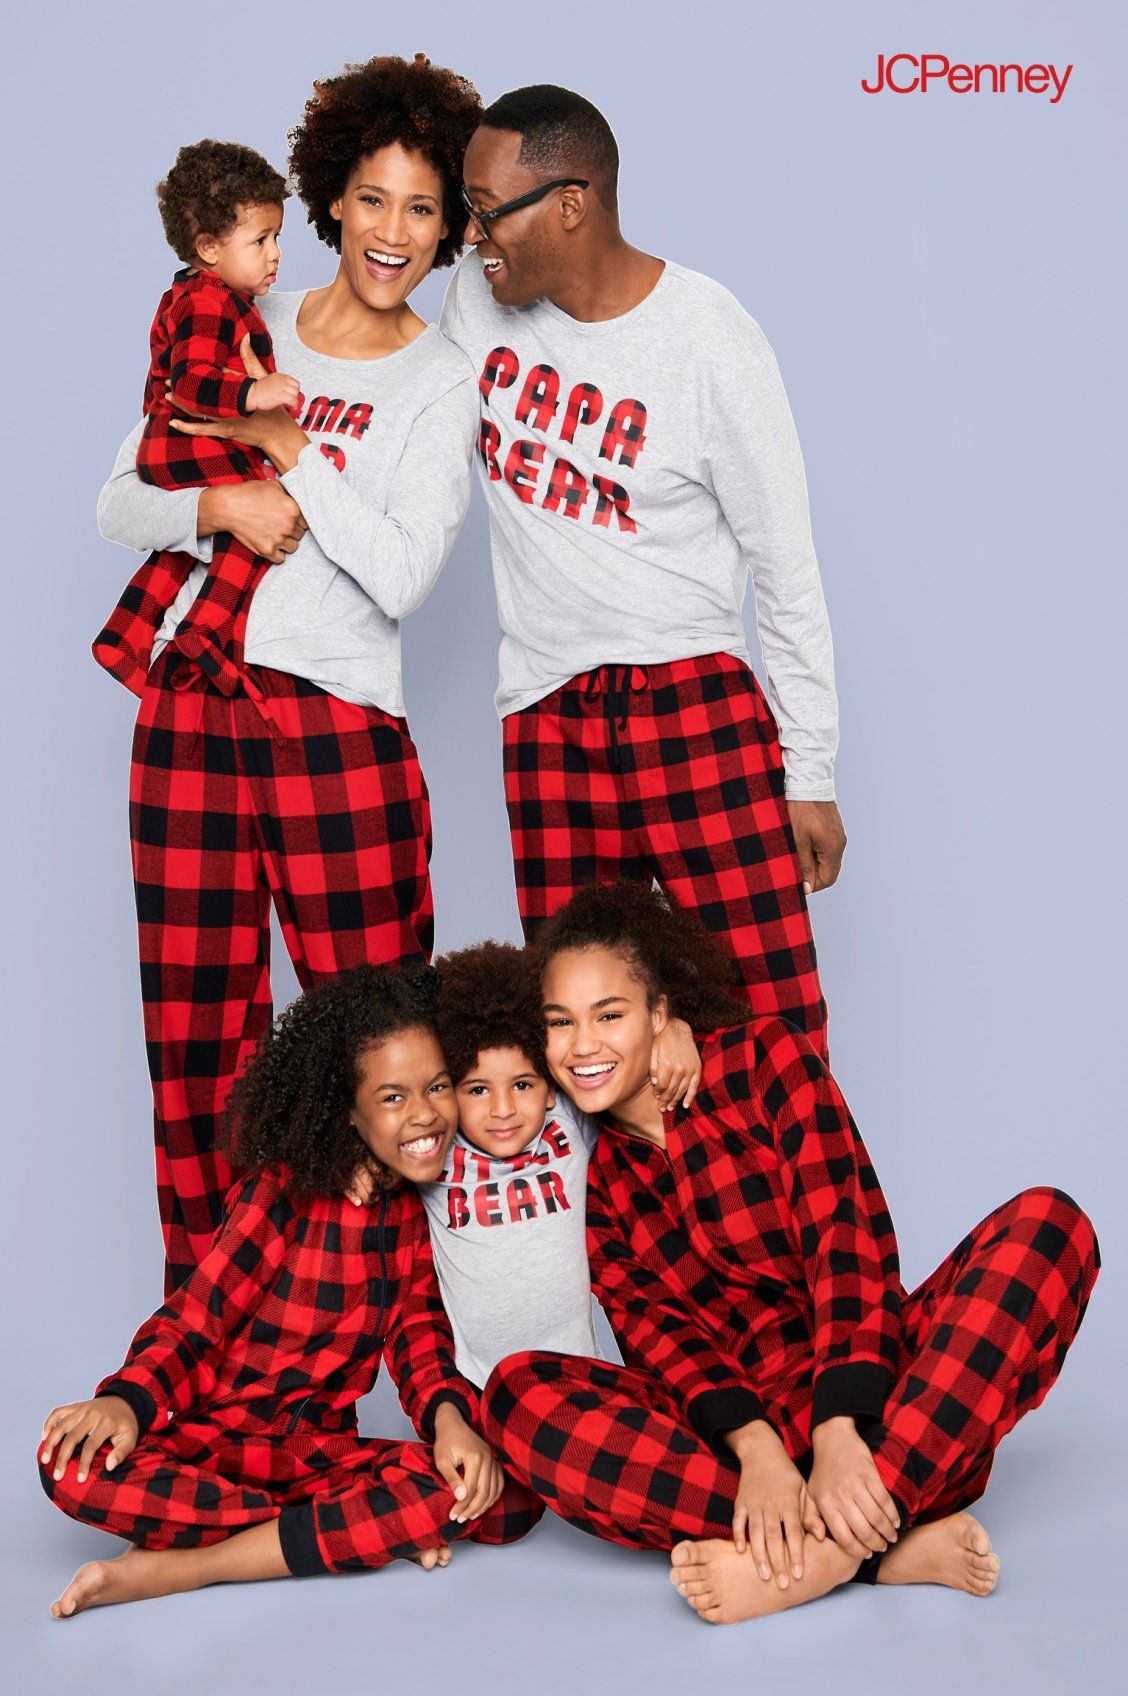 96d4659a78 Bring on Christmastime cozy in matching pajama sets from JCPenney. Get  everyone in the Christmas spirit in snuggly sleepwear made for festive  fireside fun.